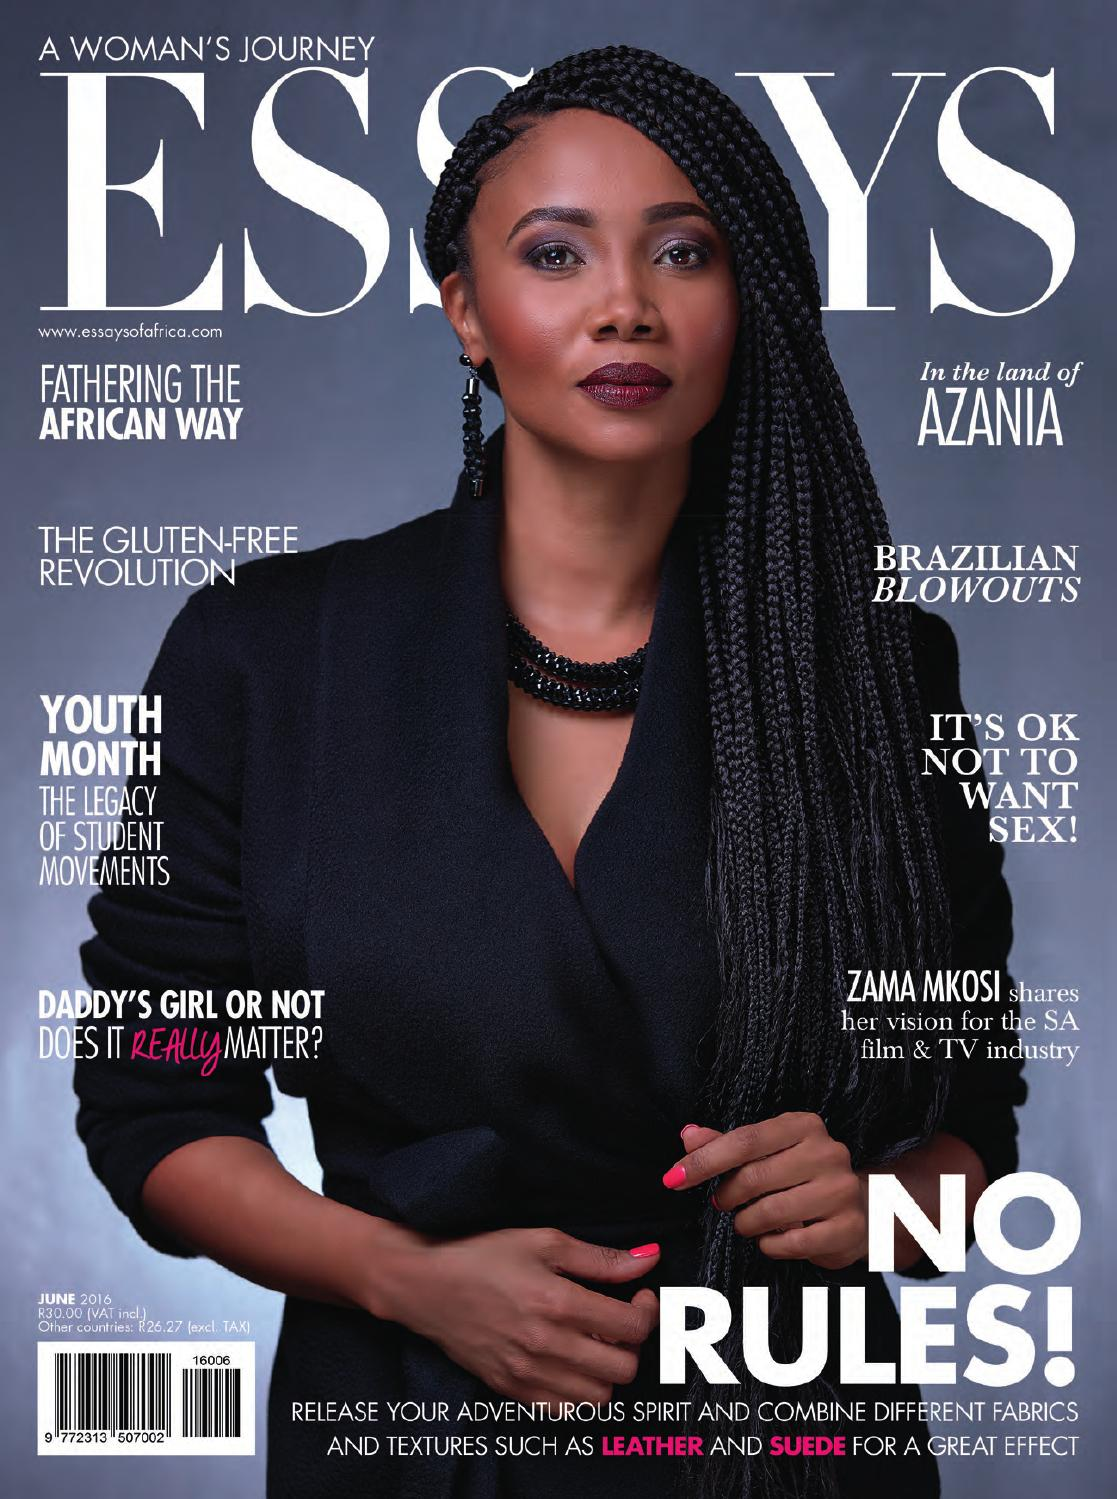 Essays Of Africa June  By Kwenta Media  Issuu  Essay On High School Dropouts also Thesis Statement For Essay  Narrative Essay Example High School